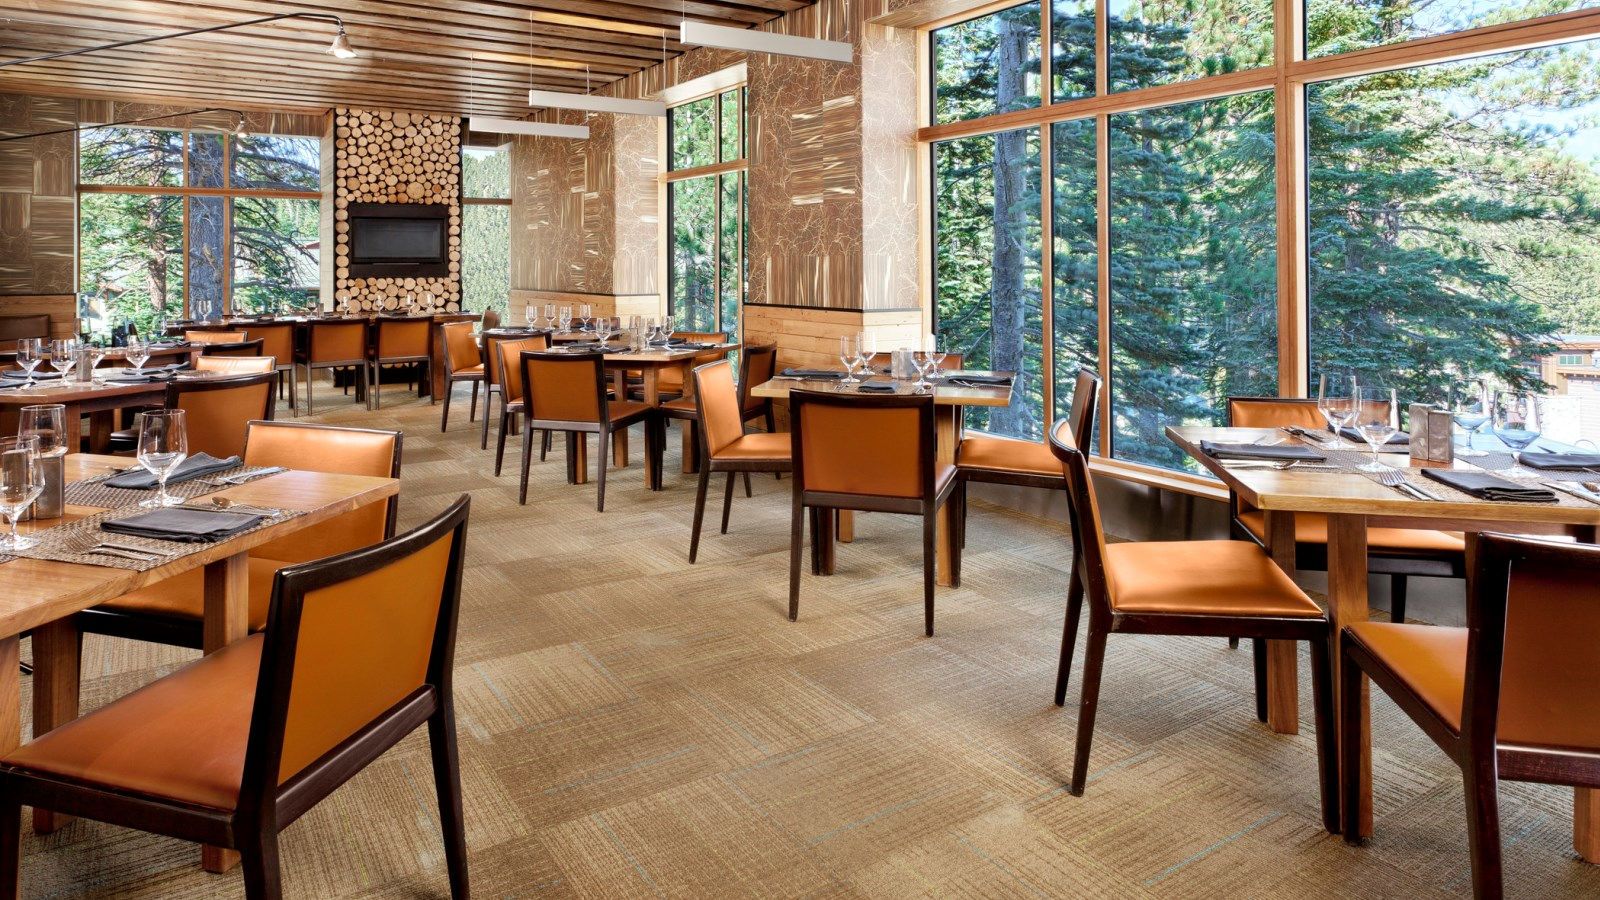 Whitebark Restaurant - Mammoth Lakes Meeting Space